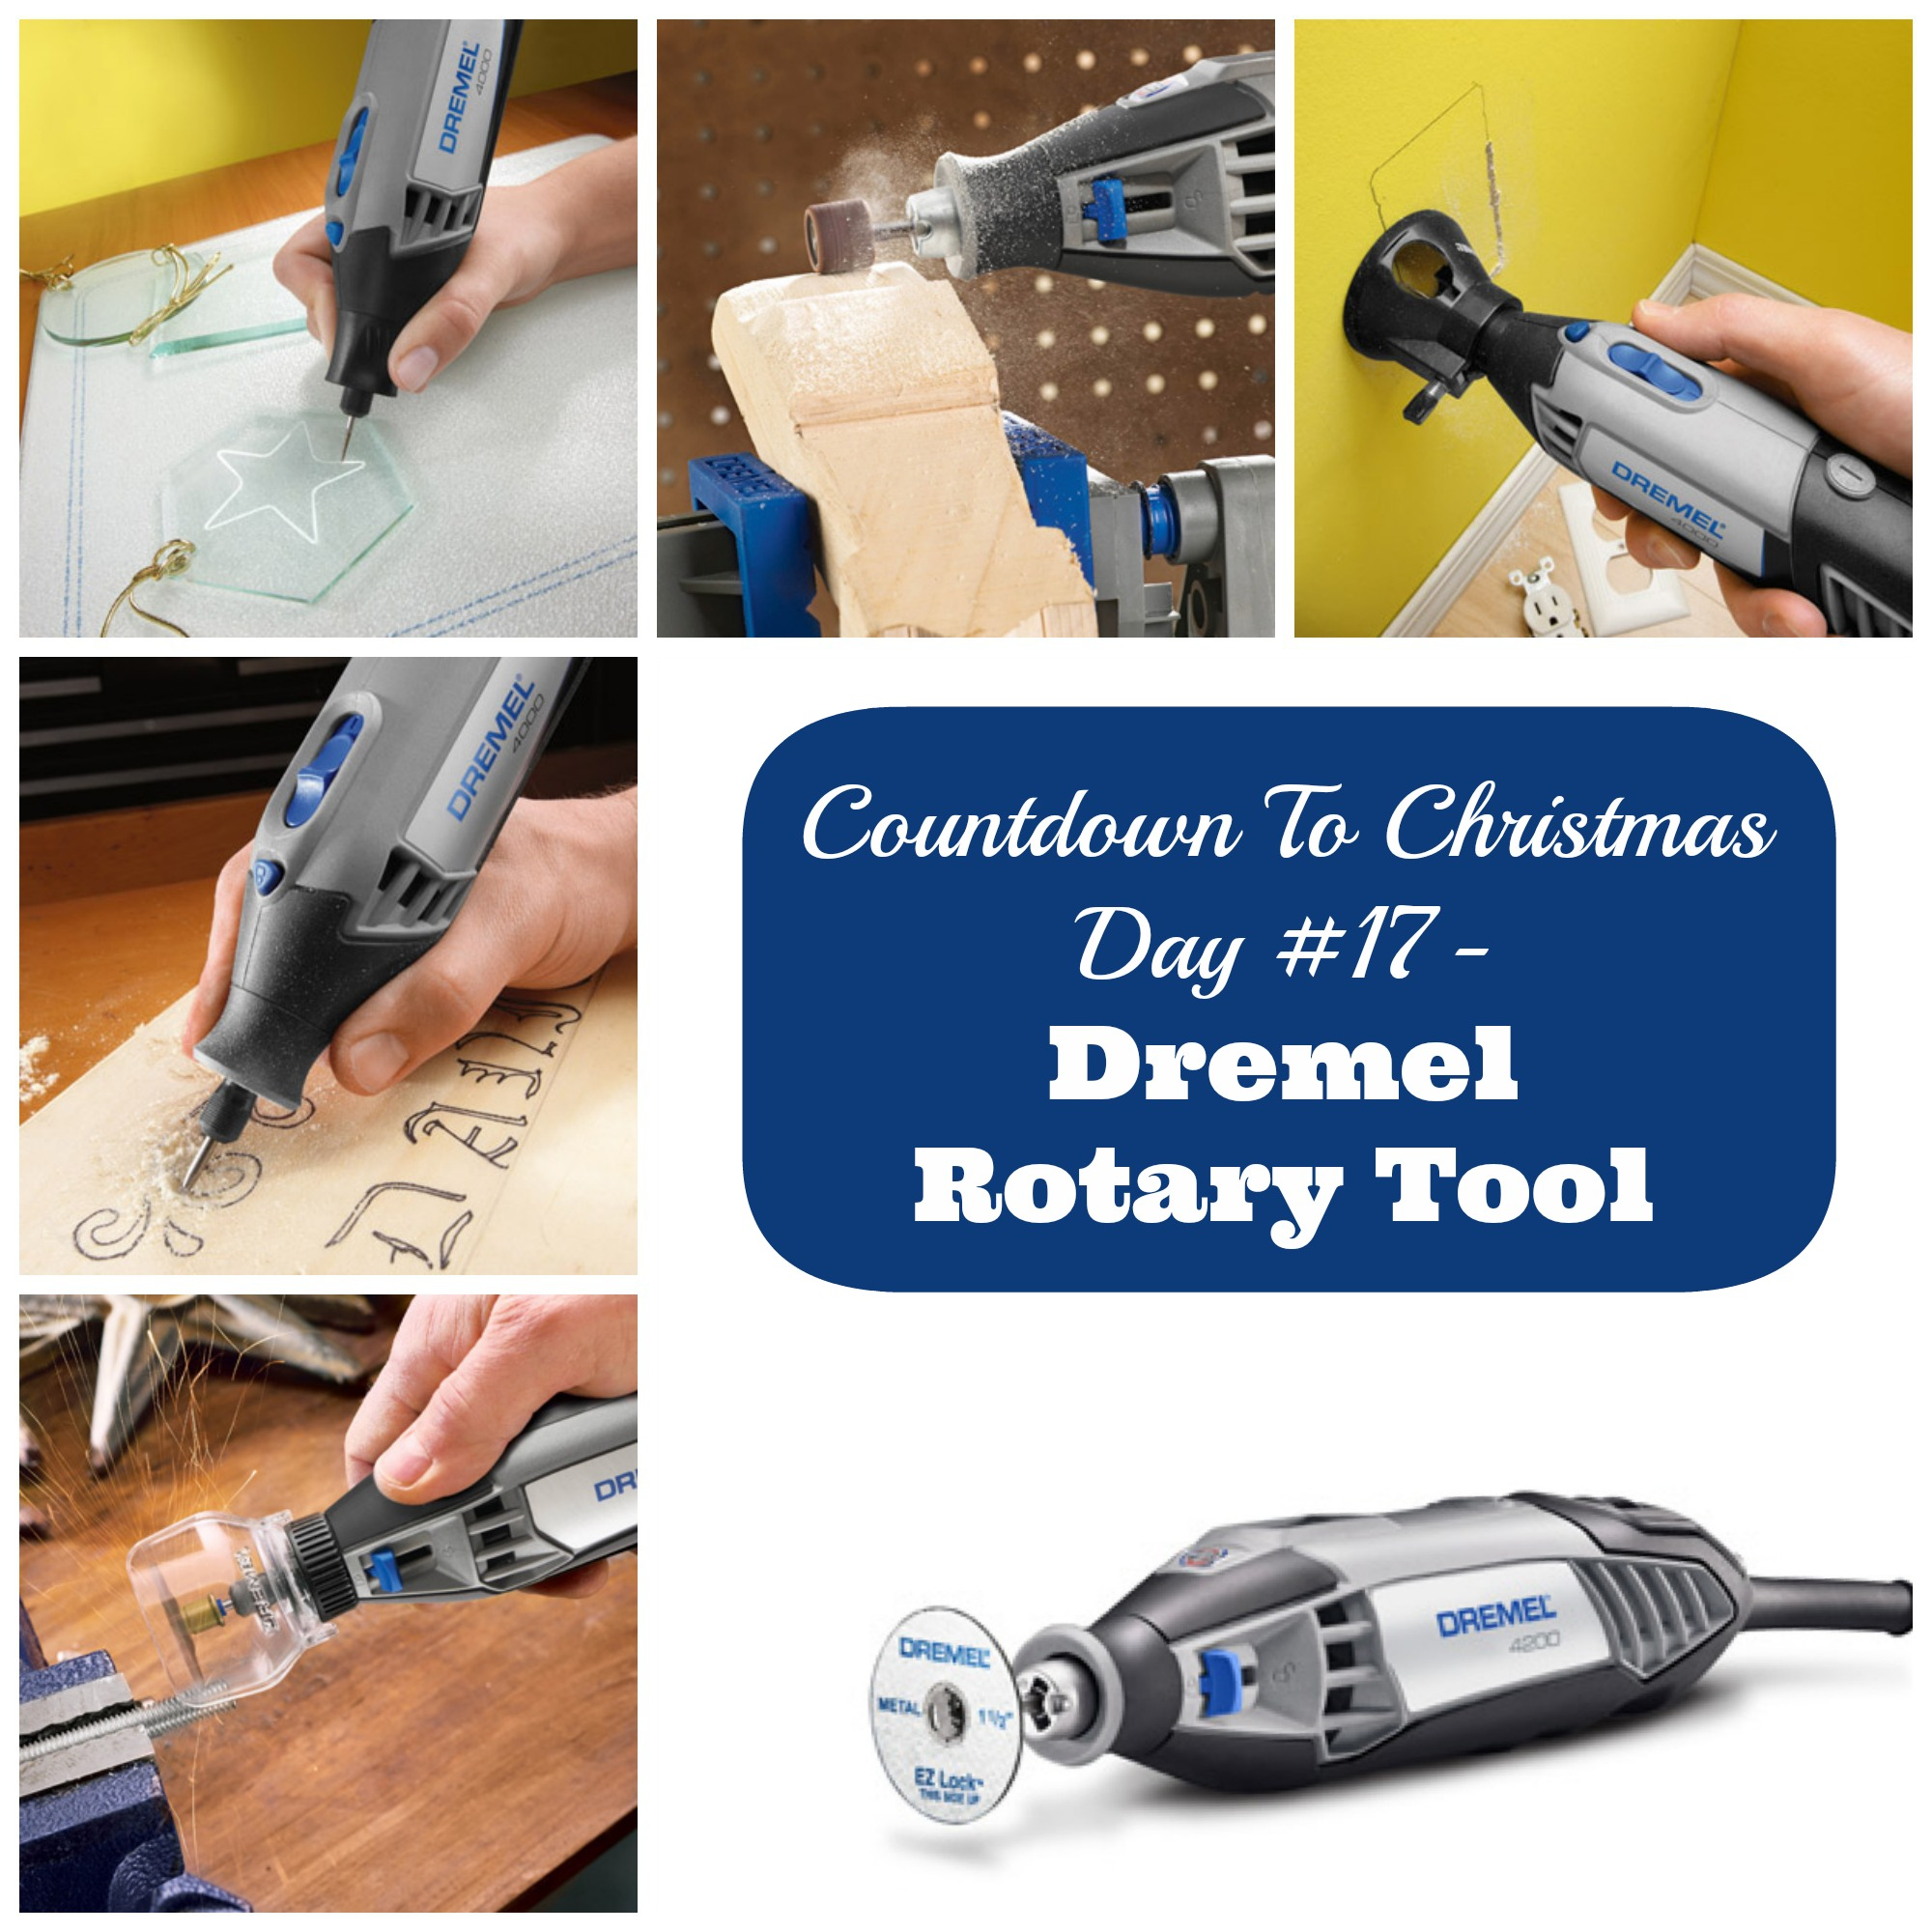 dremel craft ideas countdown to day 17 diy projects with dremel 1902